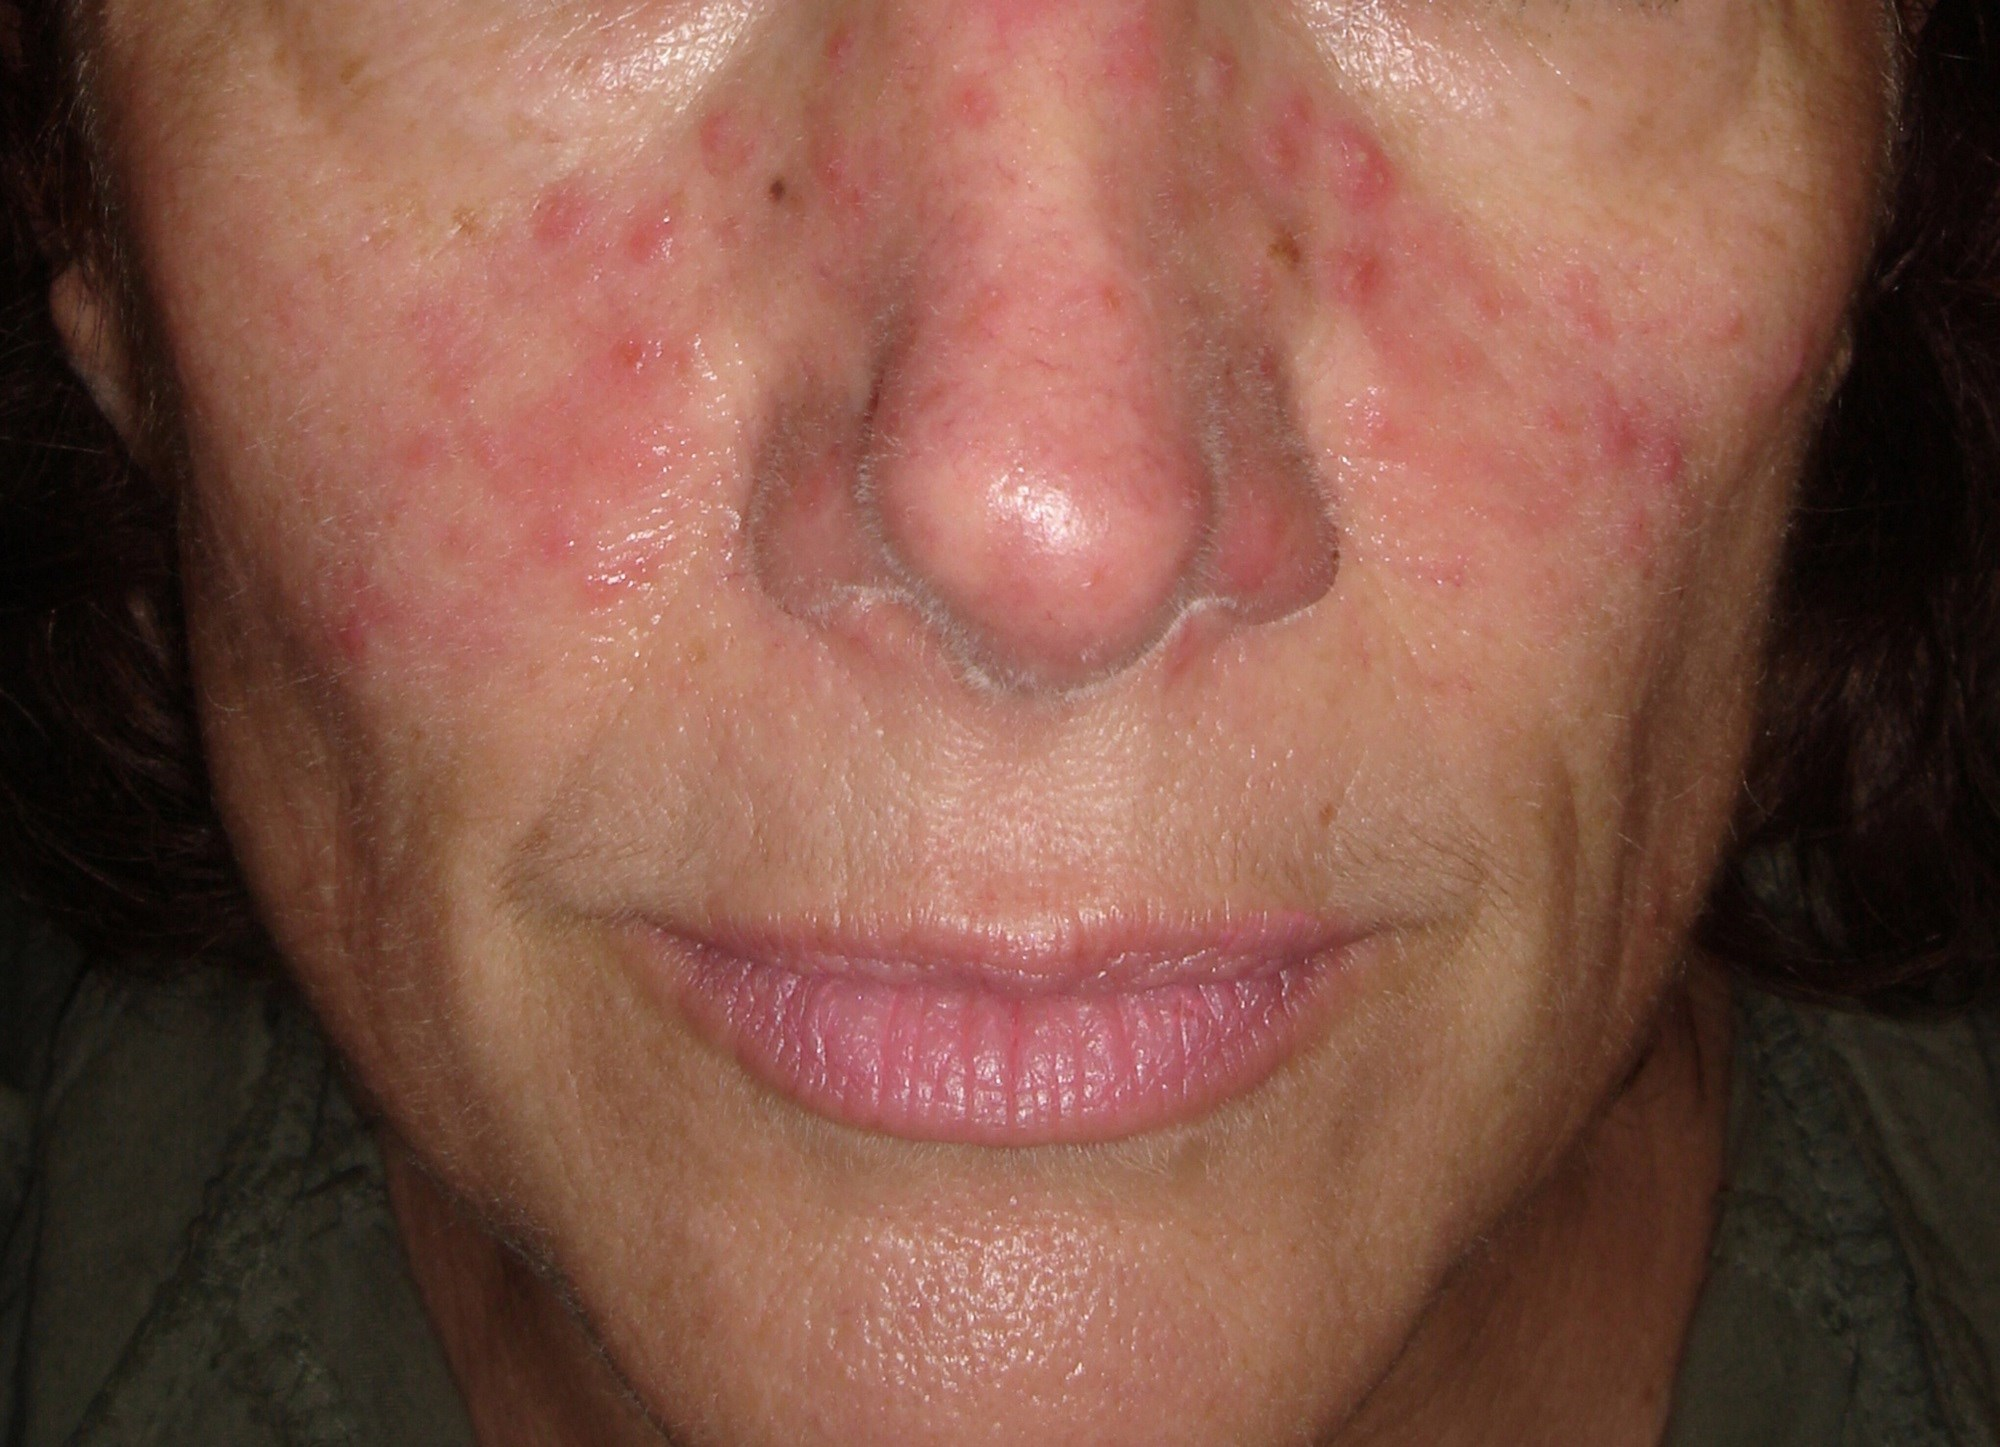 Skeletal Muscle Mass May Be Protective Against Rosacea Severity